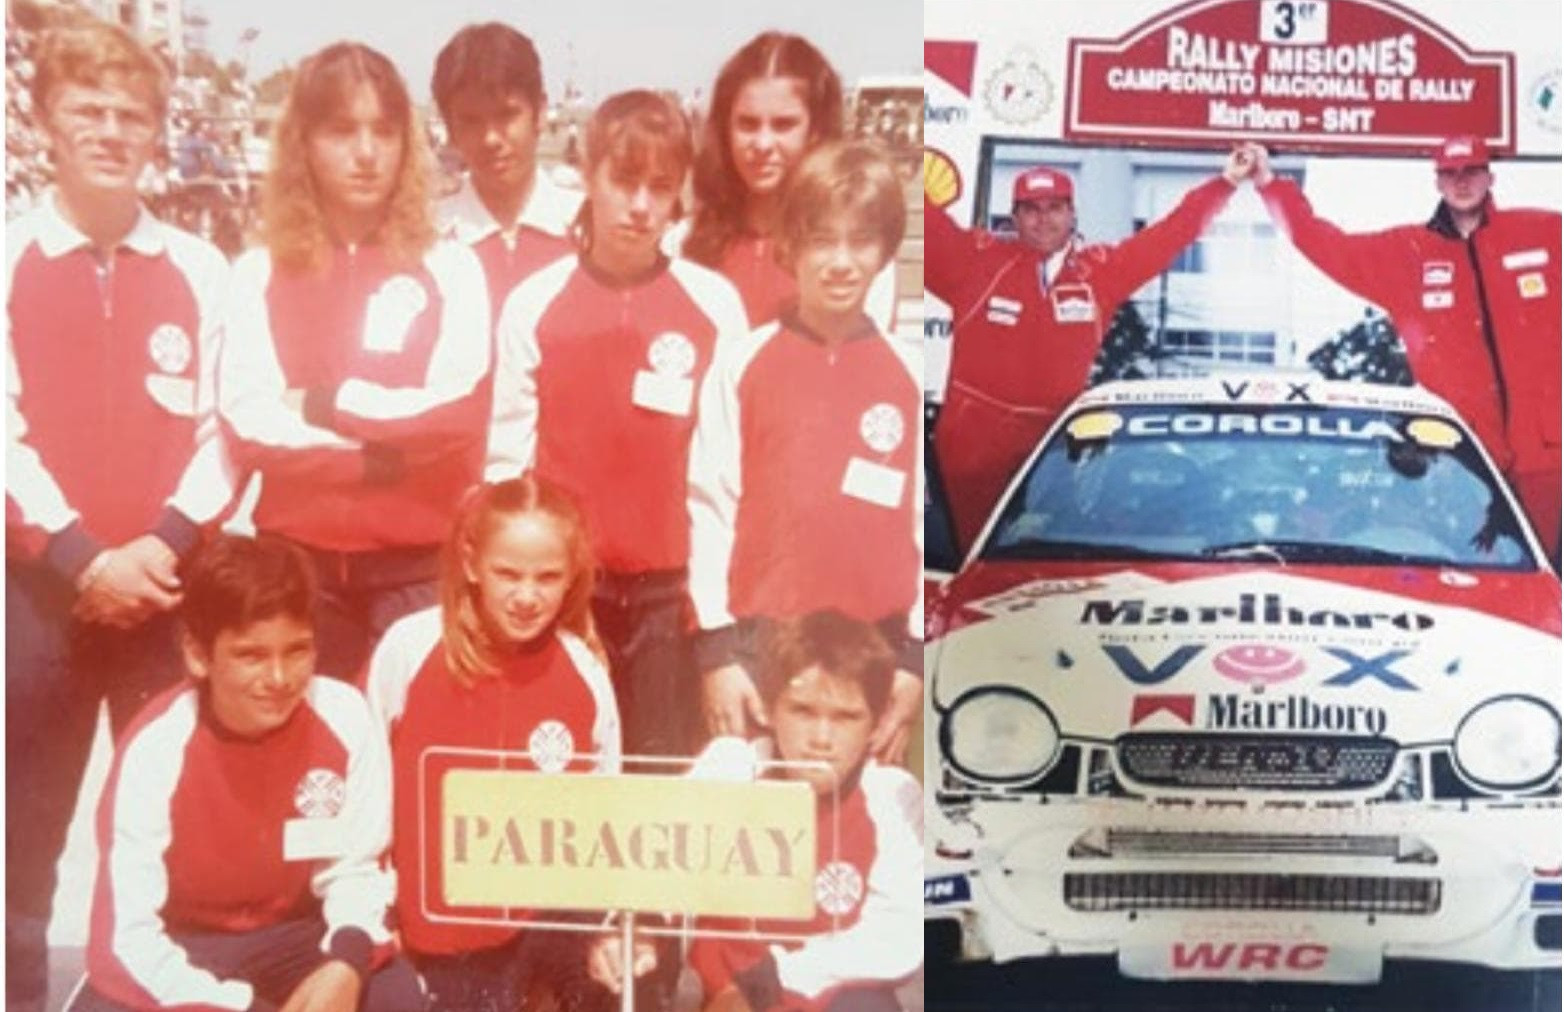 Camilo Pérez López Moreira represented Paraguay in junior tennis events while he later enjoyed success as a rally co-pilot ©Camilo Pérez López Moreira